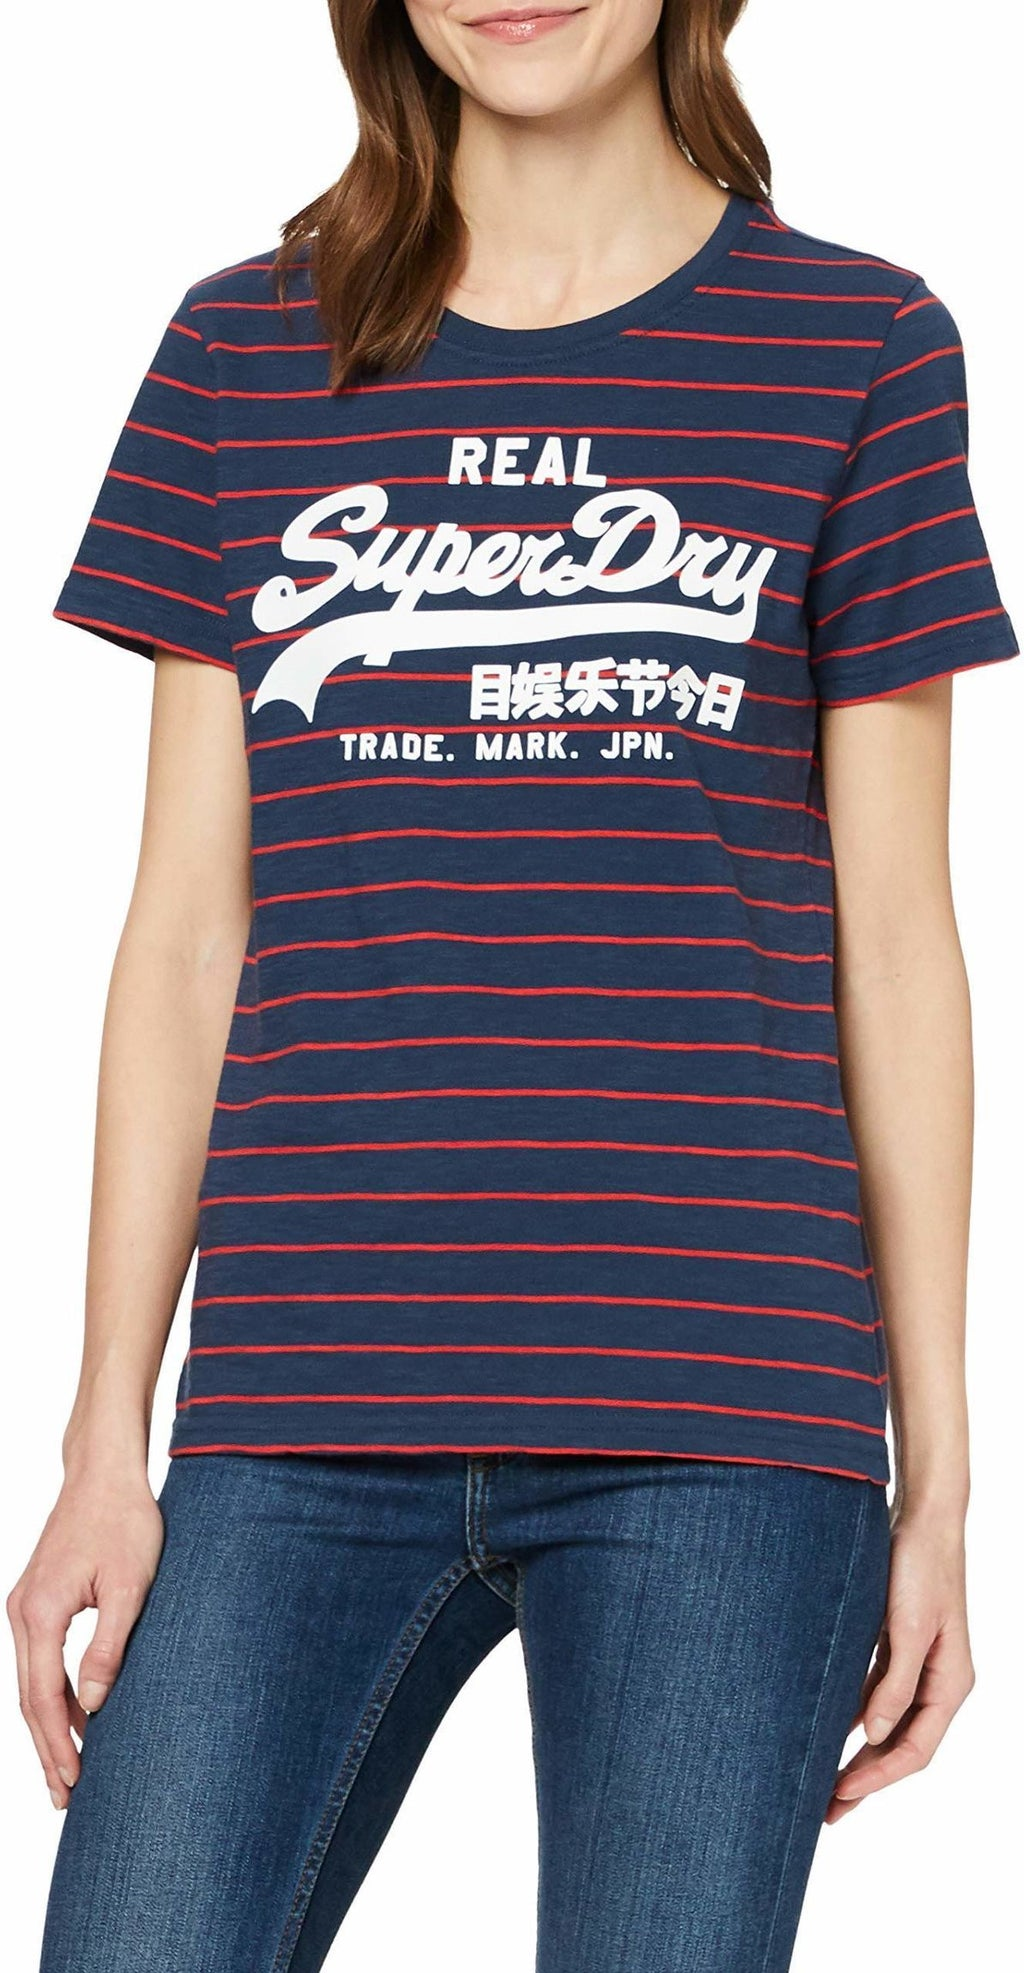 Superdry Vintage Logo Stripe T-Shirt Navy